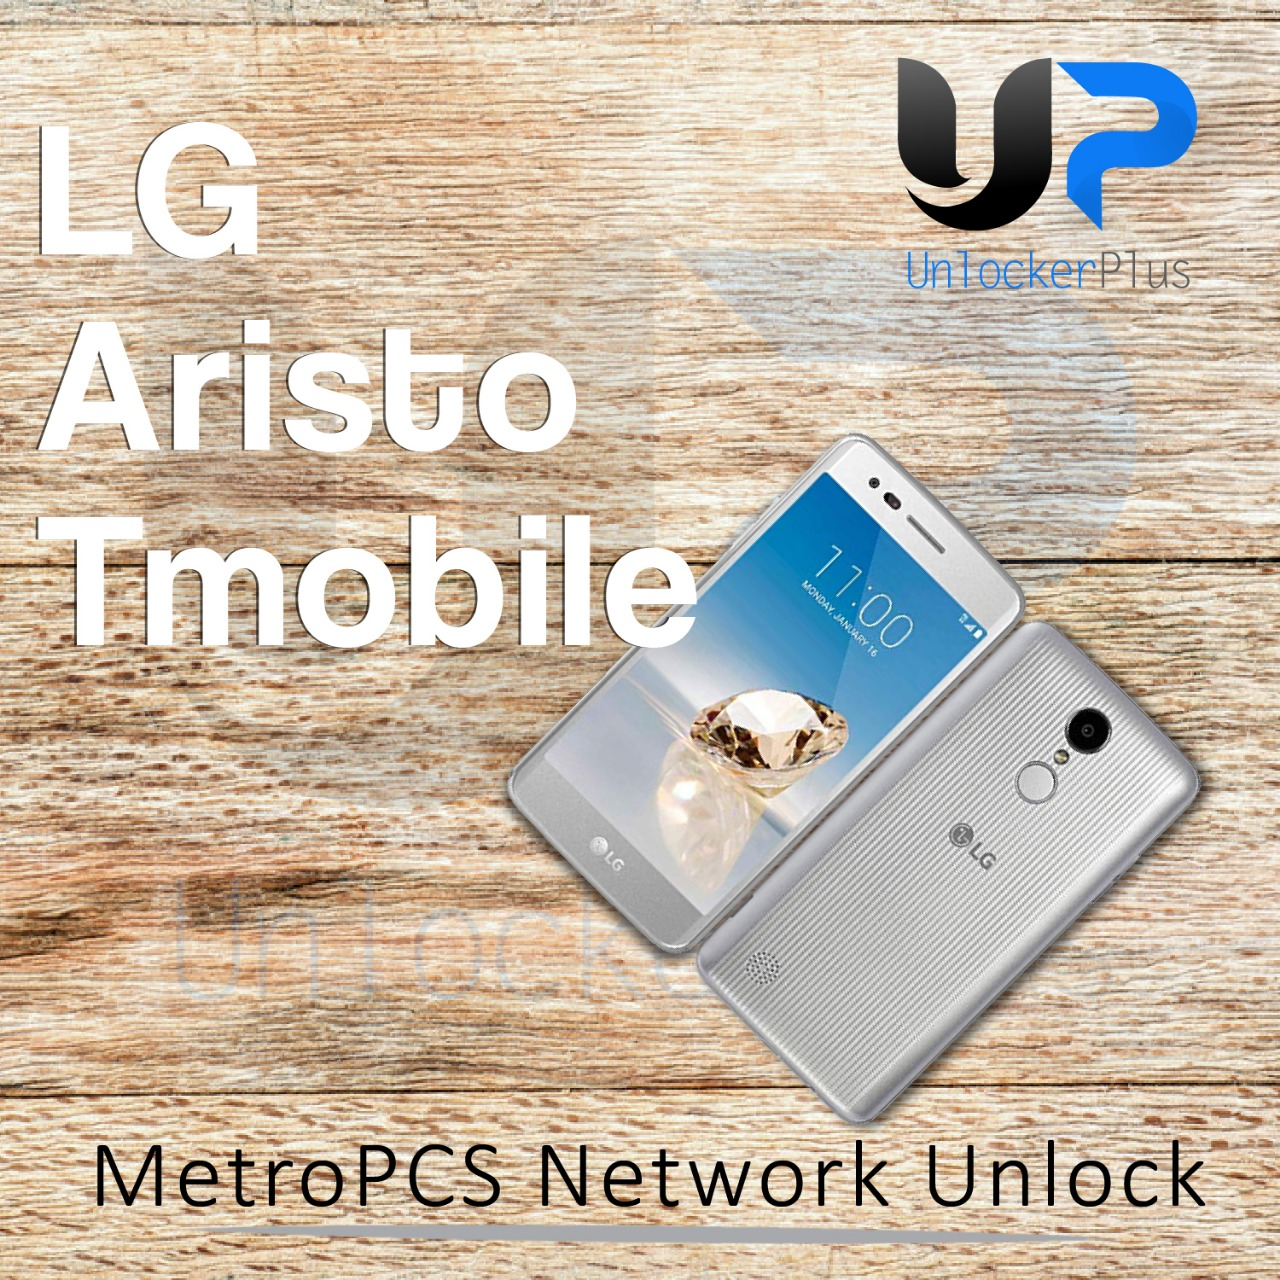 How to Hard Reset LG Aristo MS210 We provide instructions to